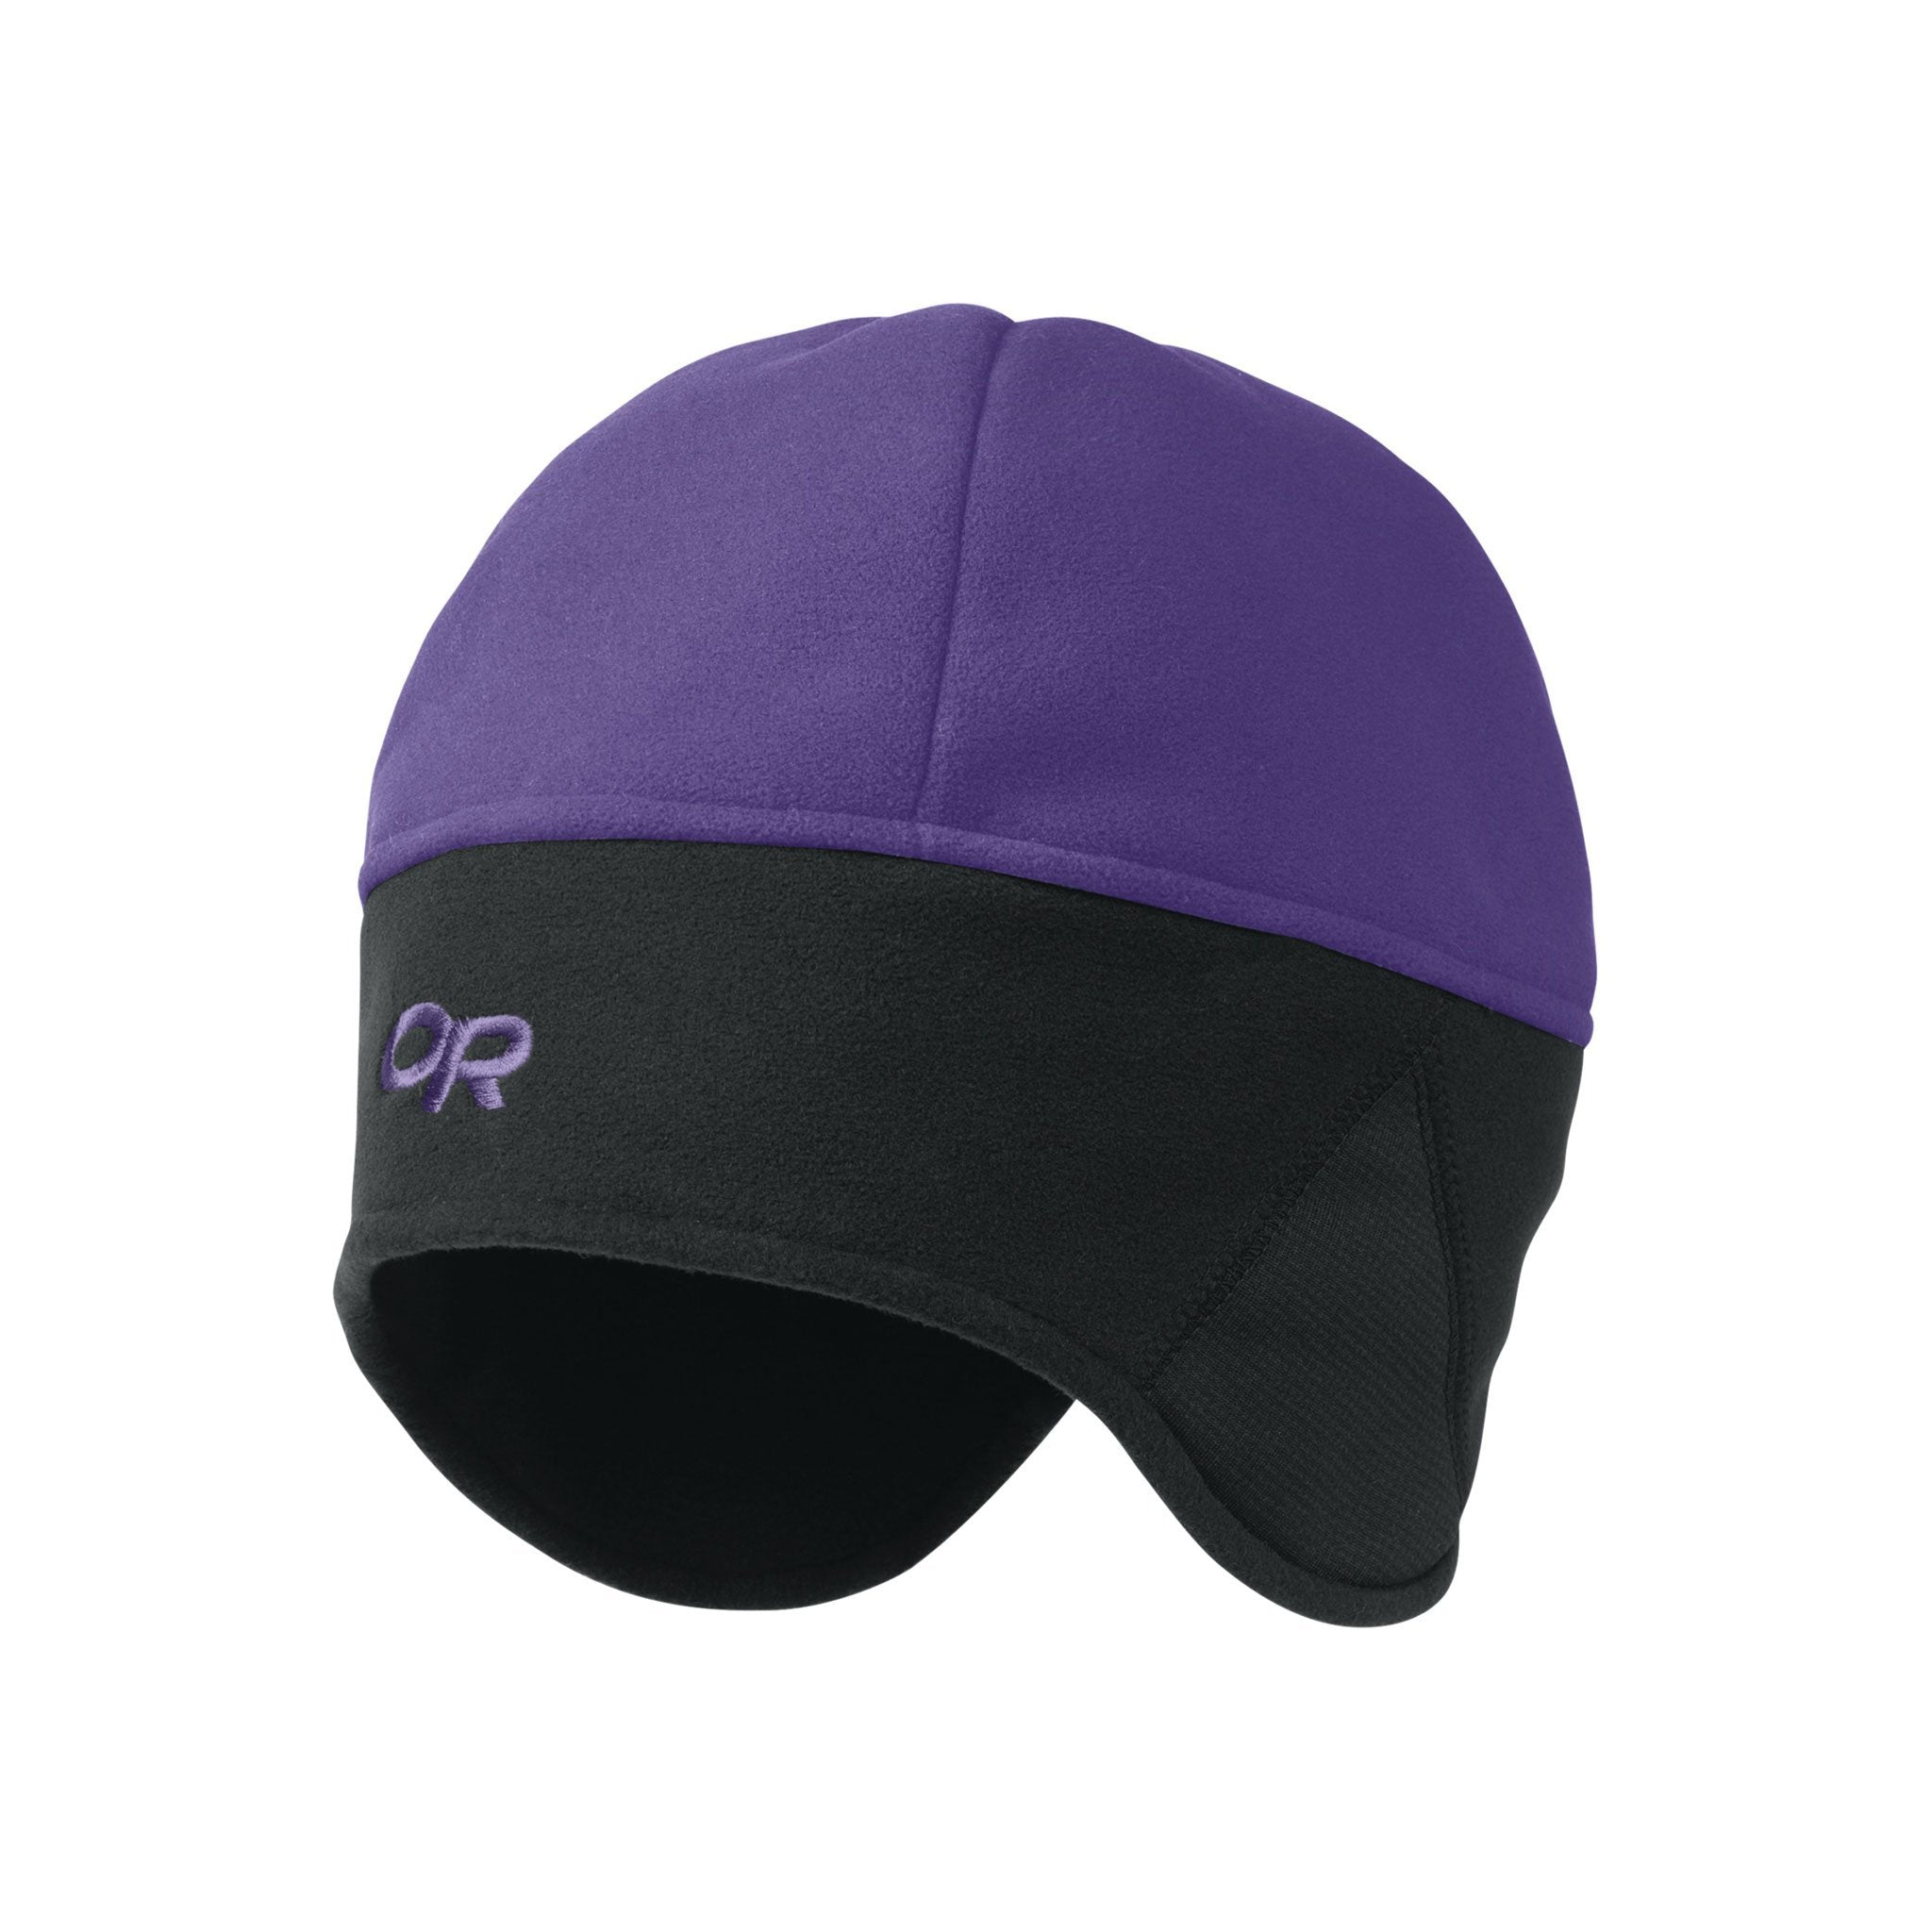 50d2ddfeabaa5 Outdoor Research Wind Warrior Hat - Unisex